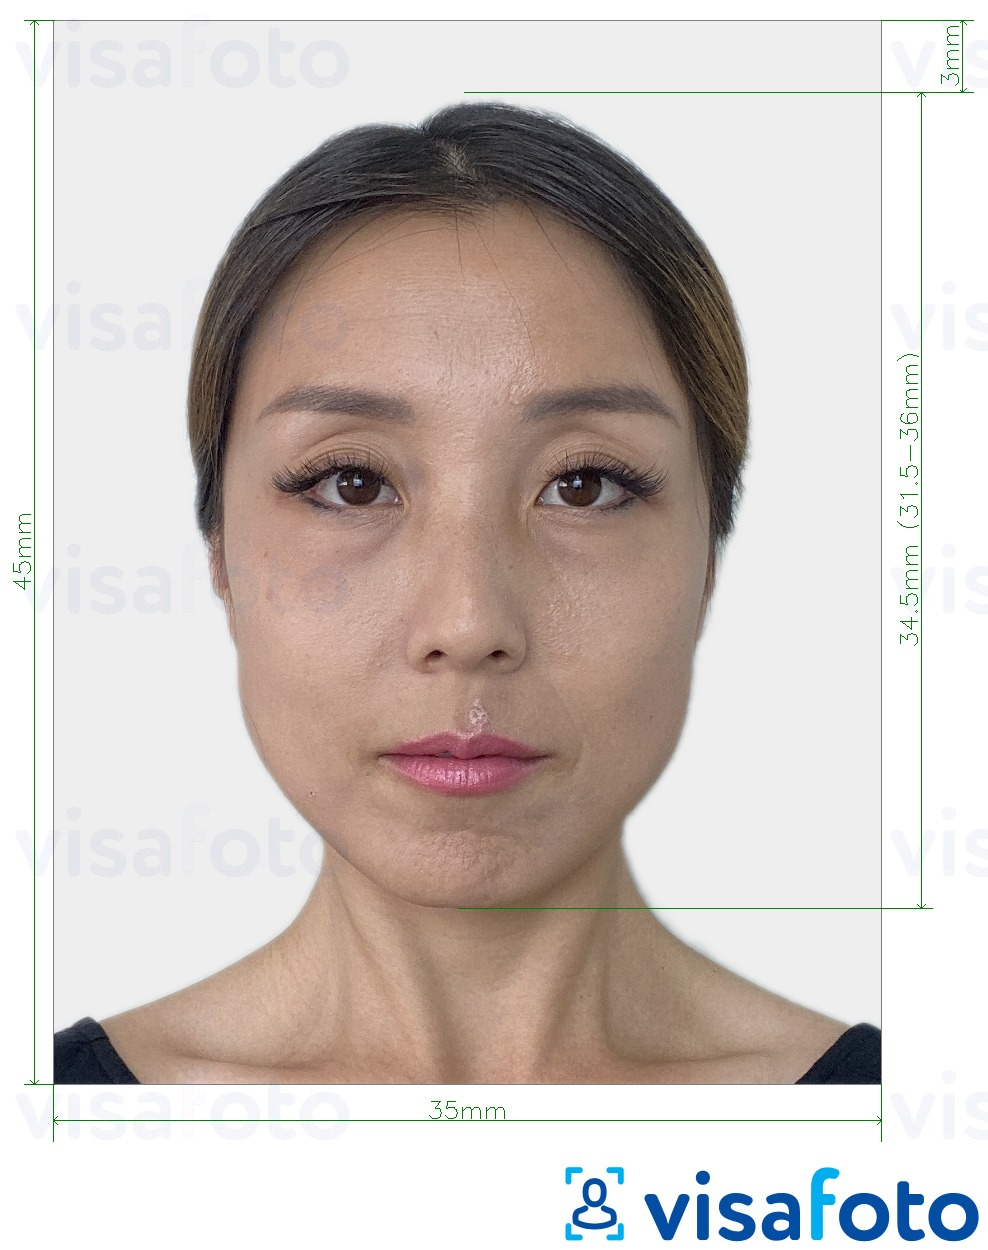 Example of photo for South Korea Visa 35x45 mm (3.5x4.5 cm) with exact size specification